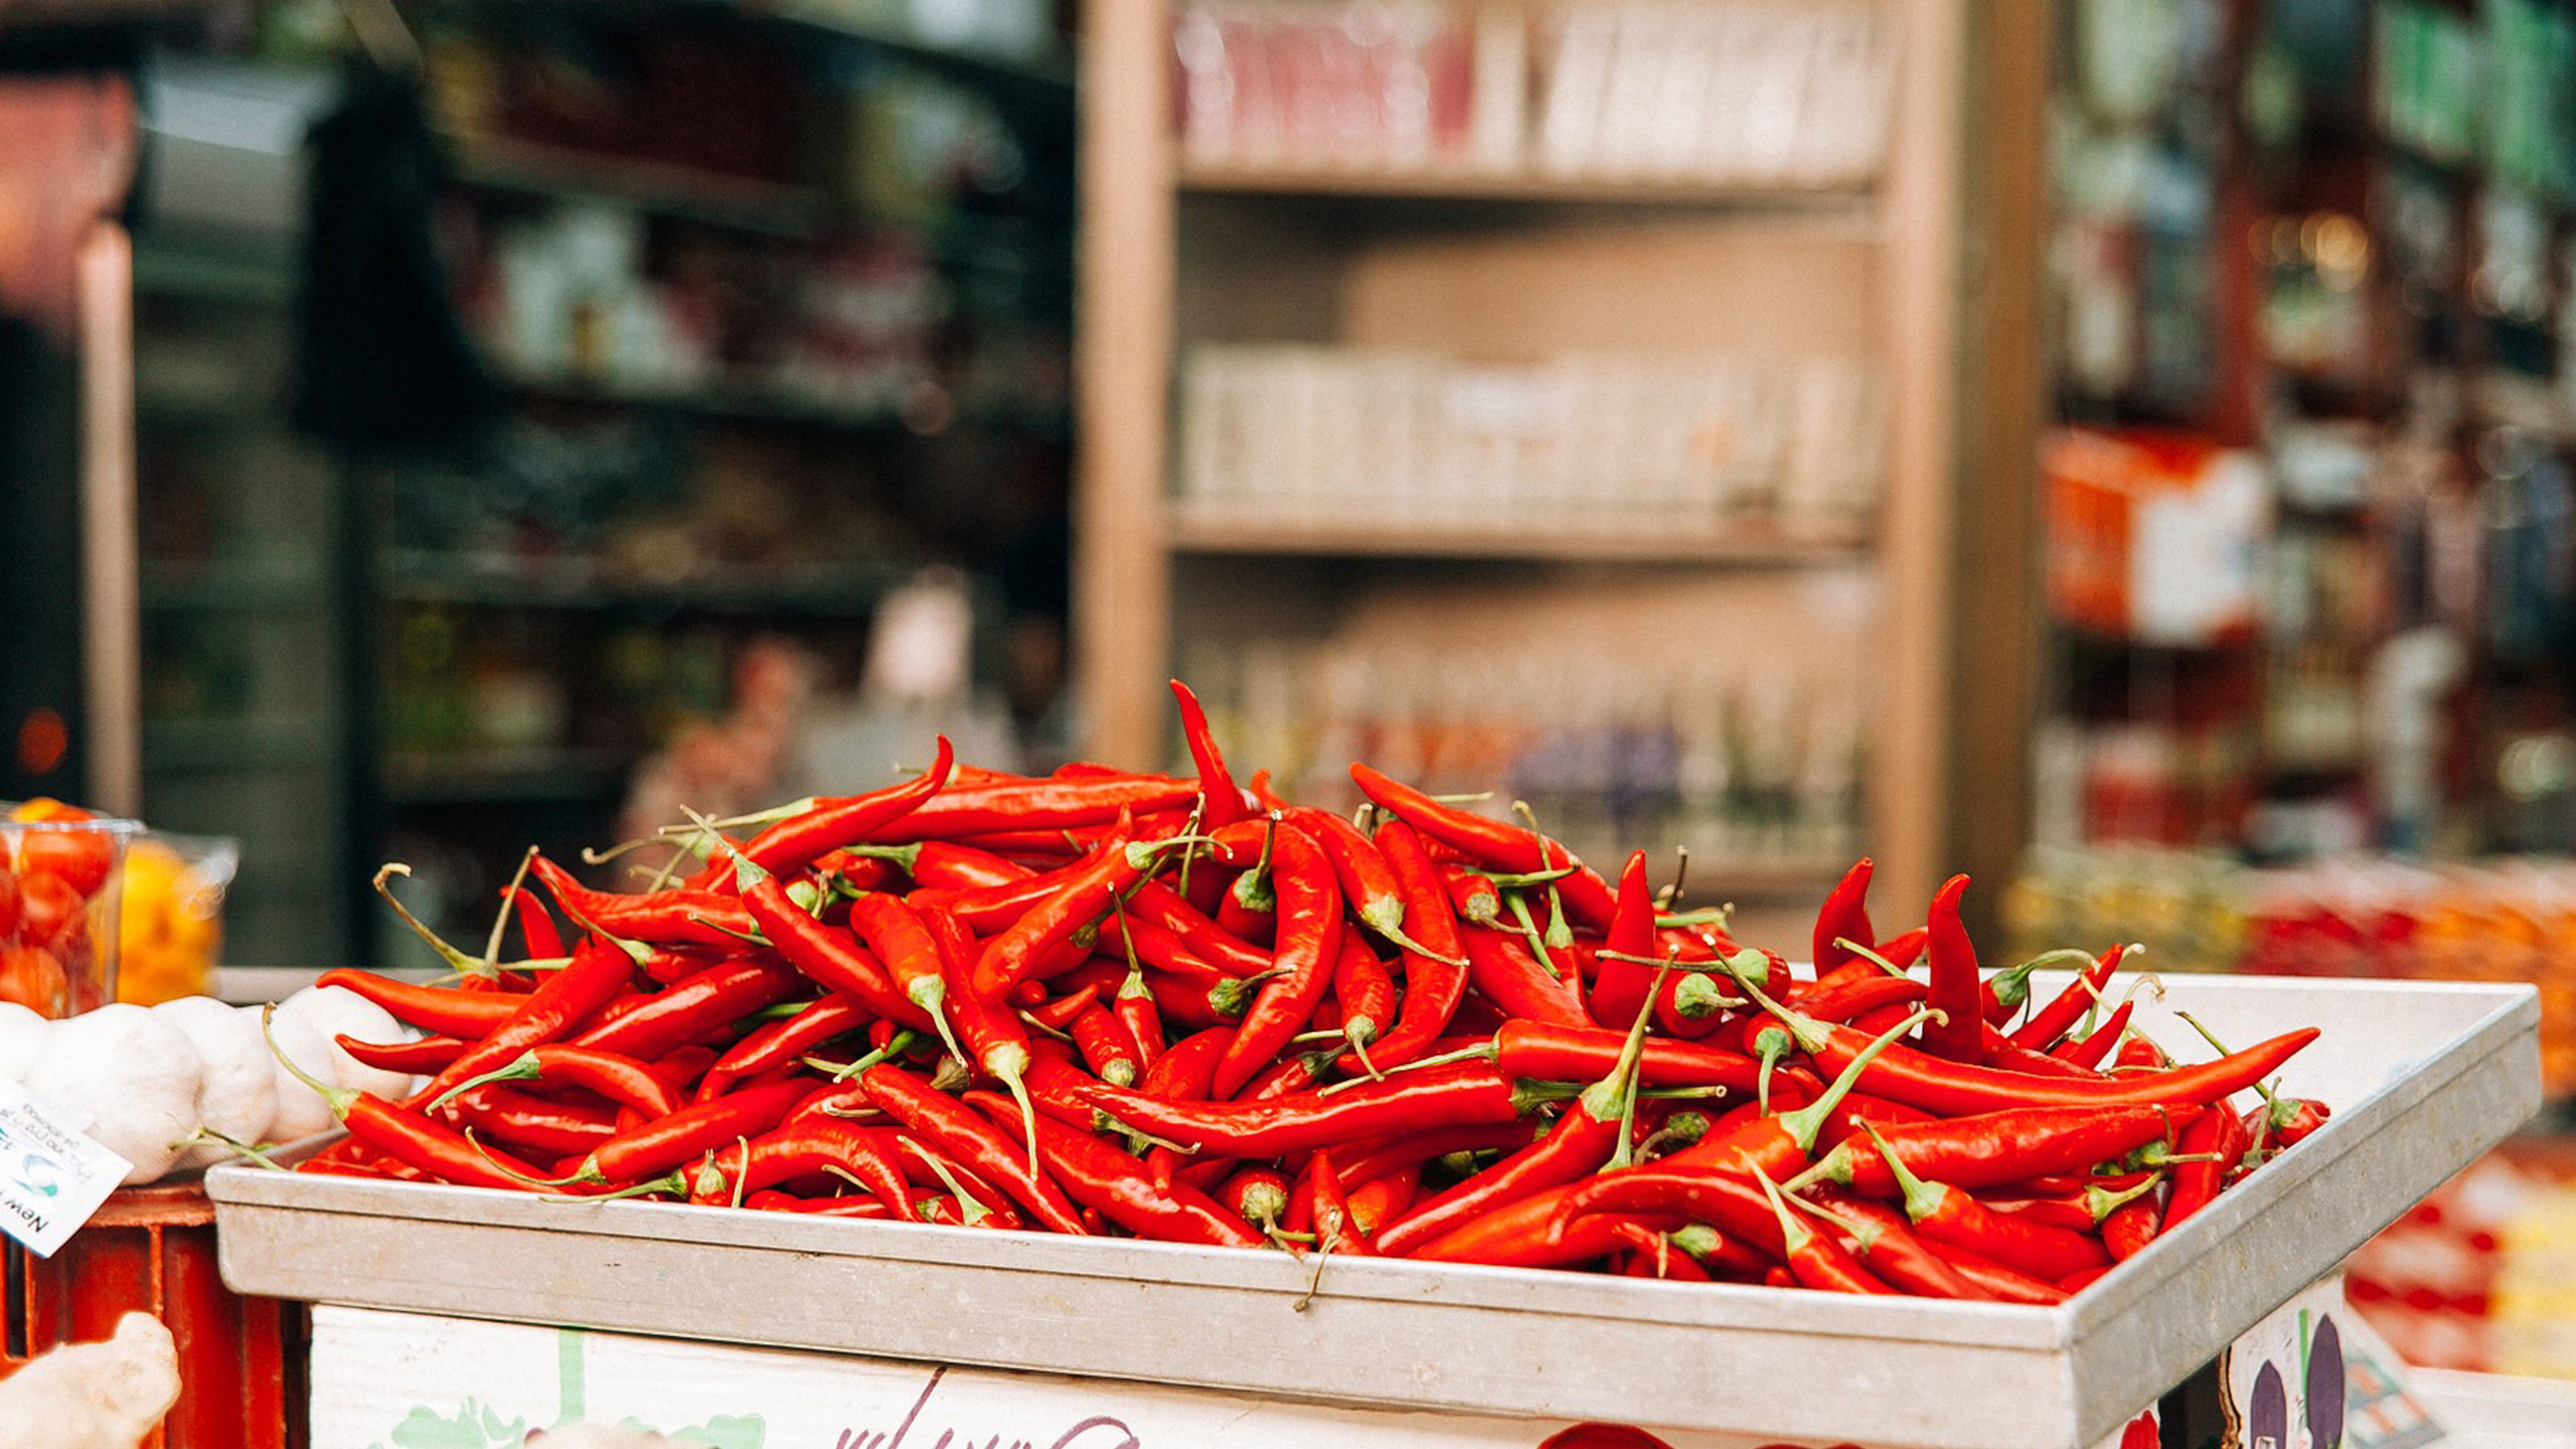 Pile-of-chill-peppers-on-a-stand